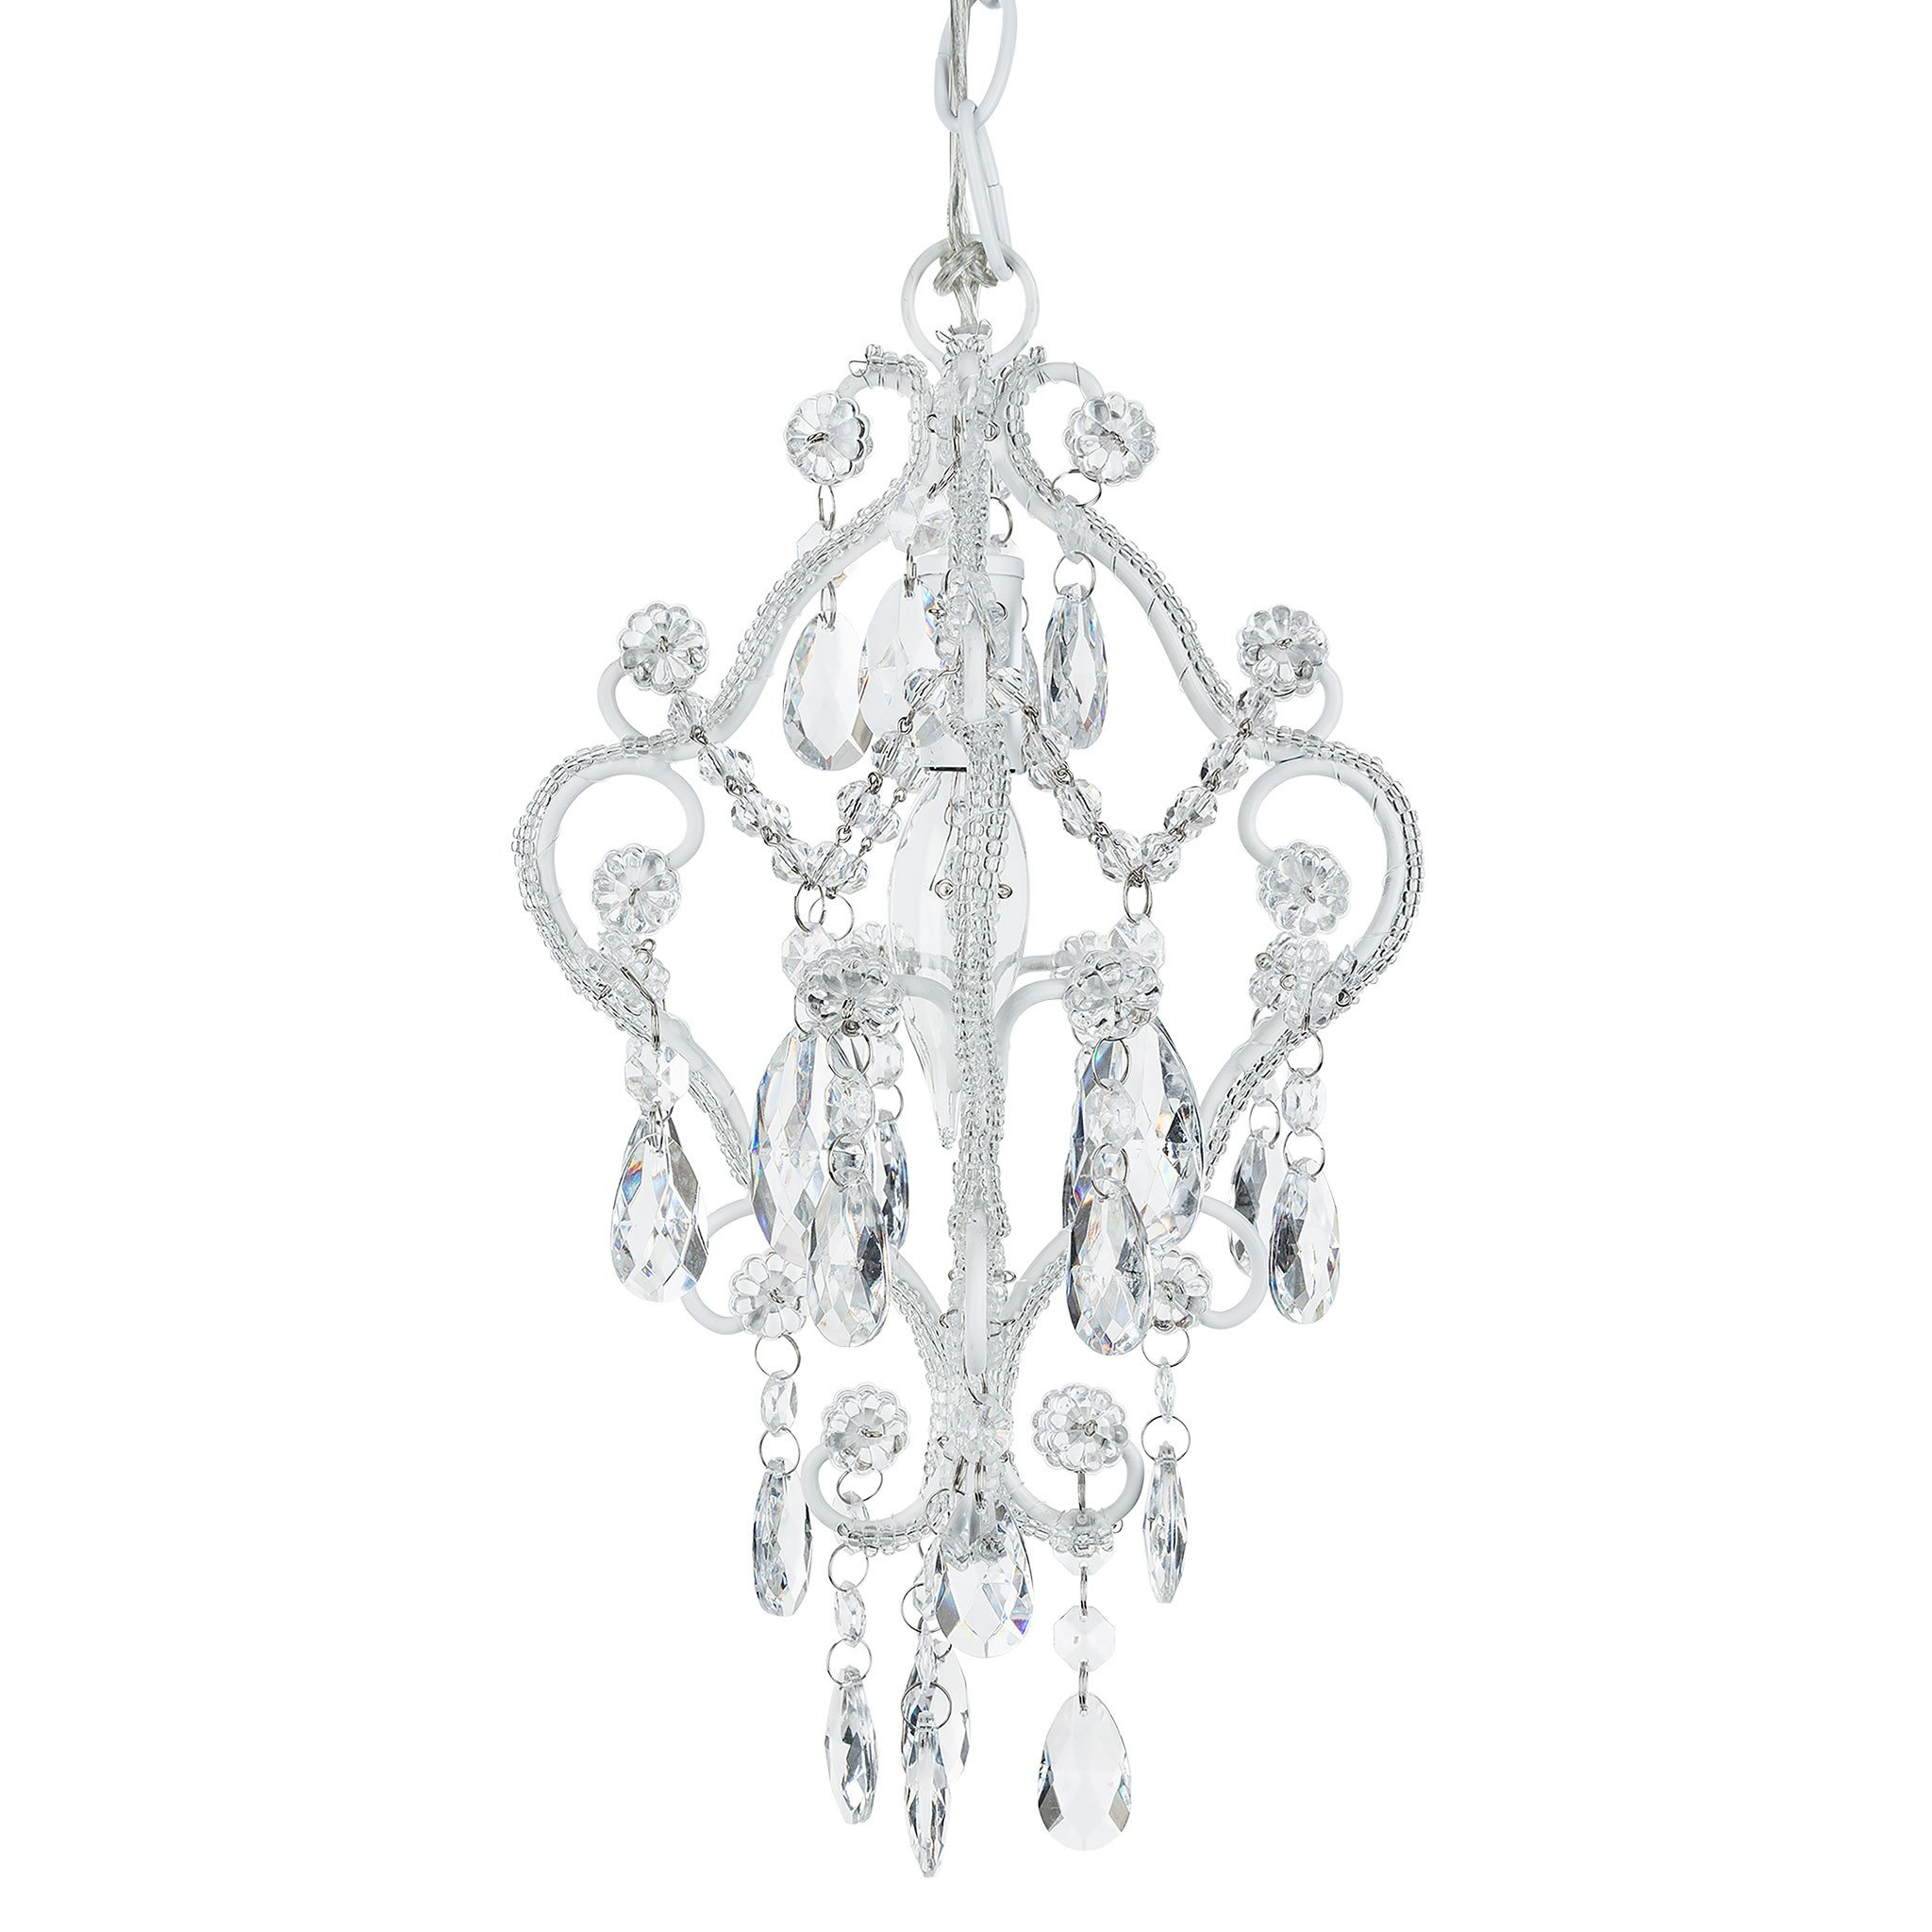 Amalfi Decor 1 Light Mini Crystal-Beaded Nursery Chandelier (Pink) | Wrought Iron Frame with Glass Crystals by